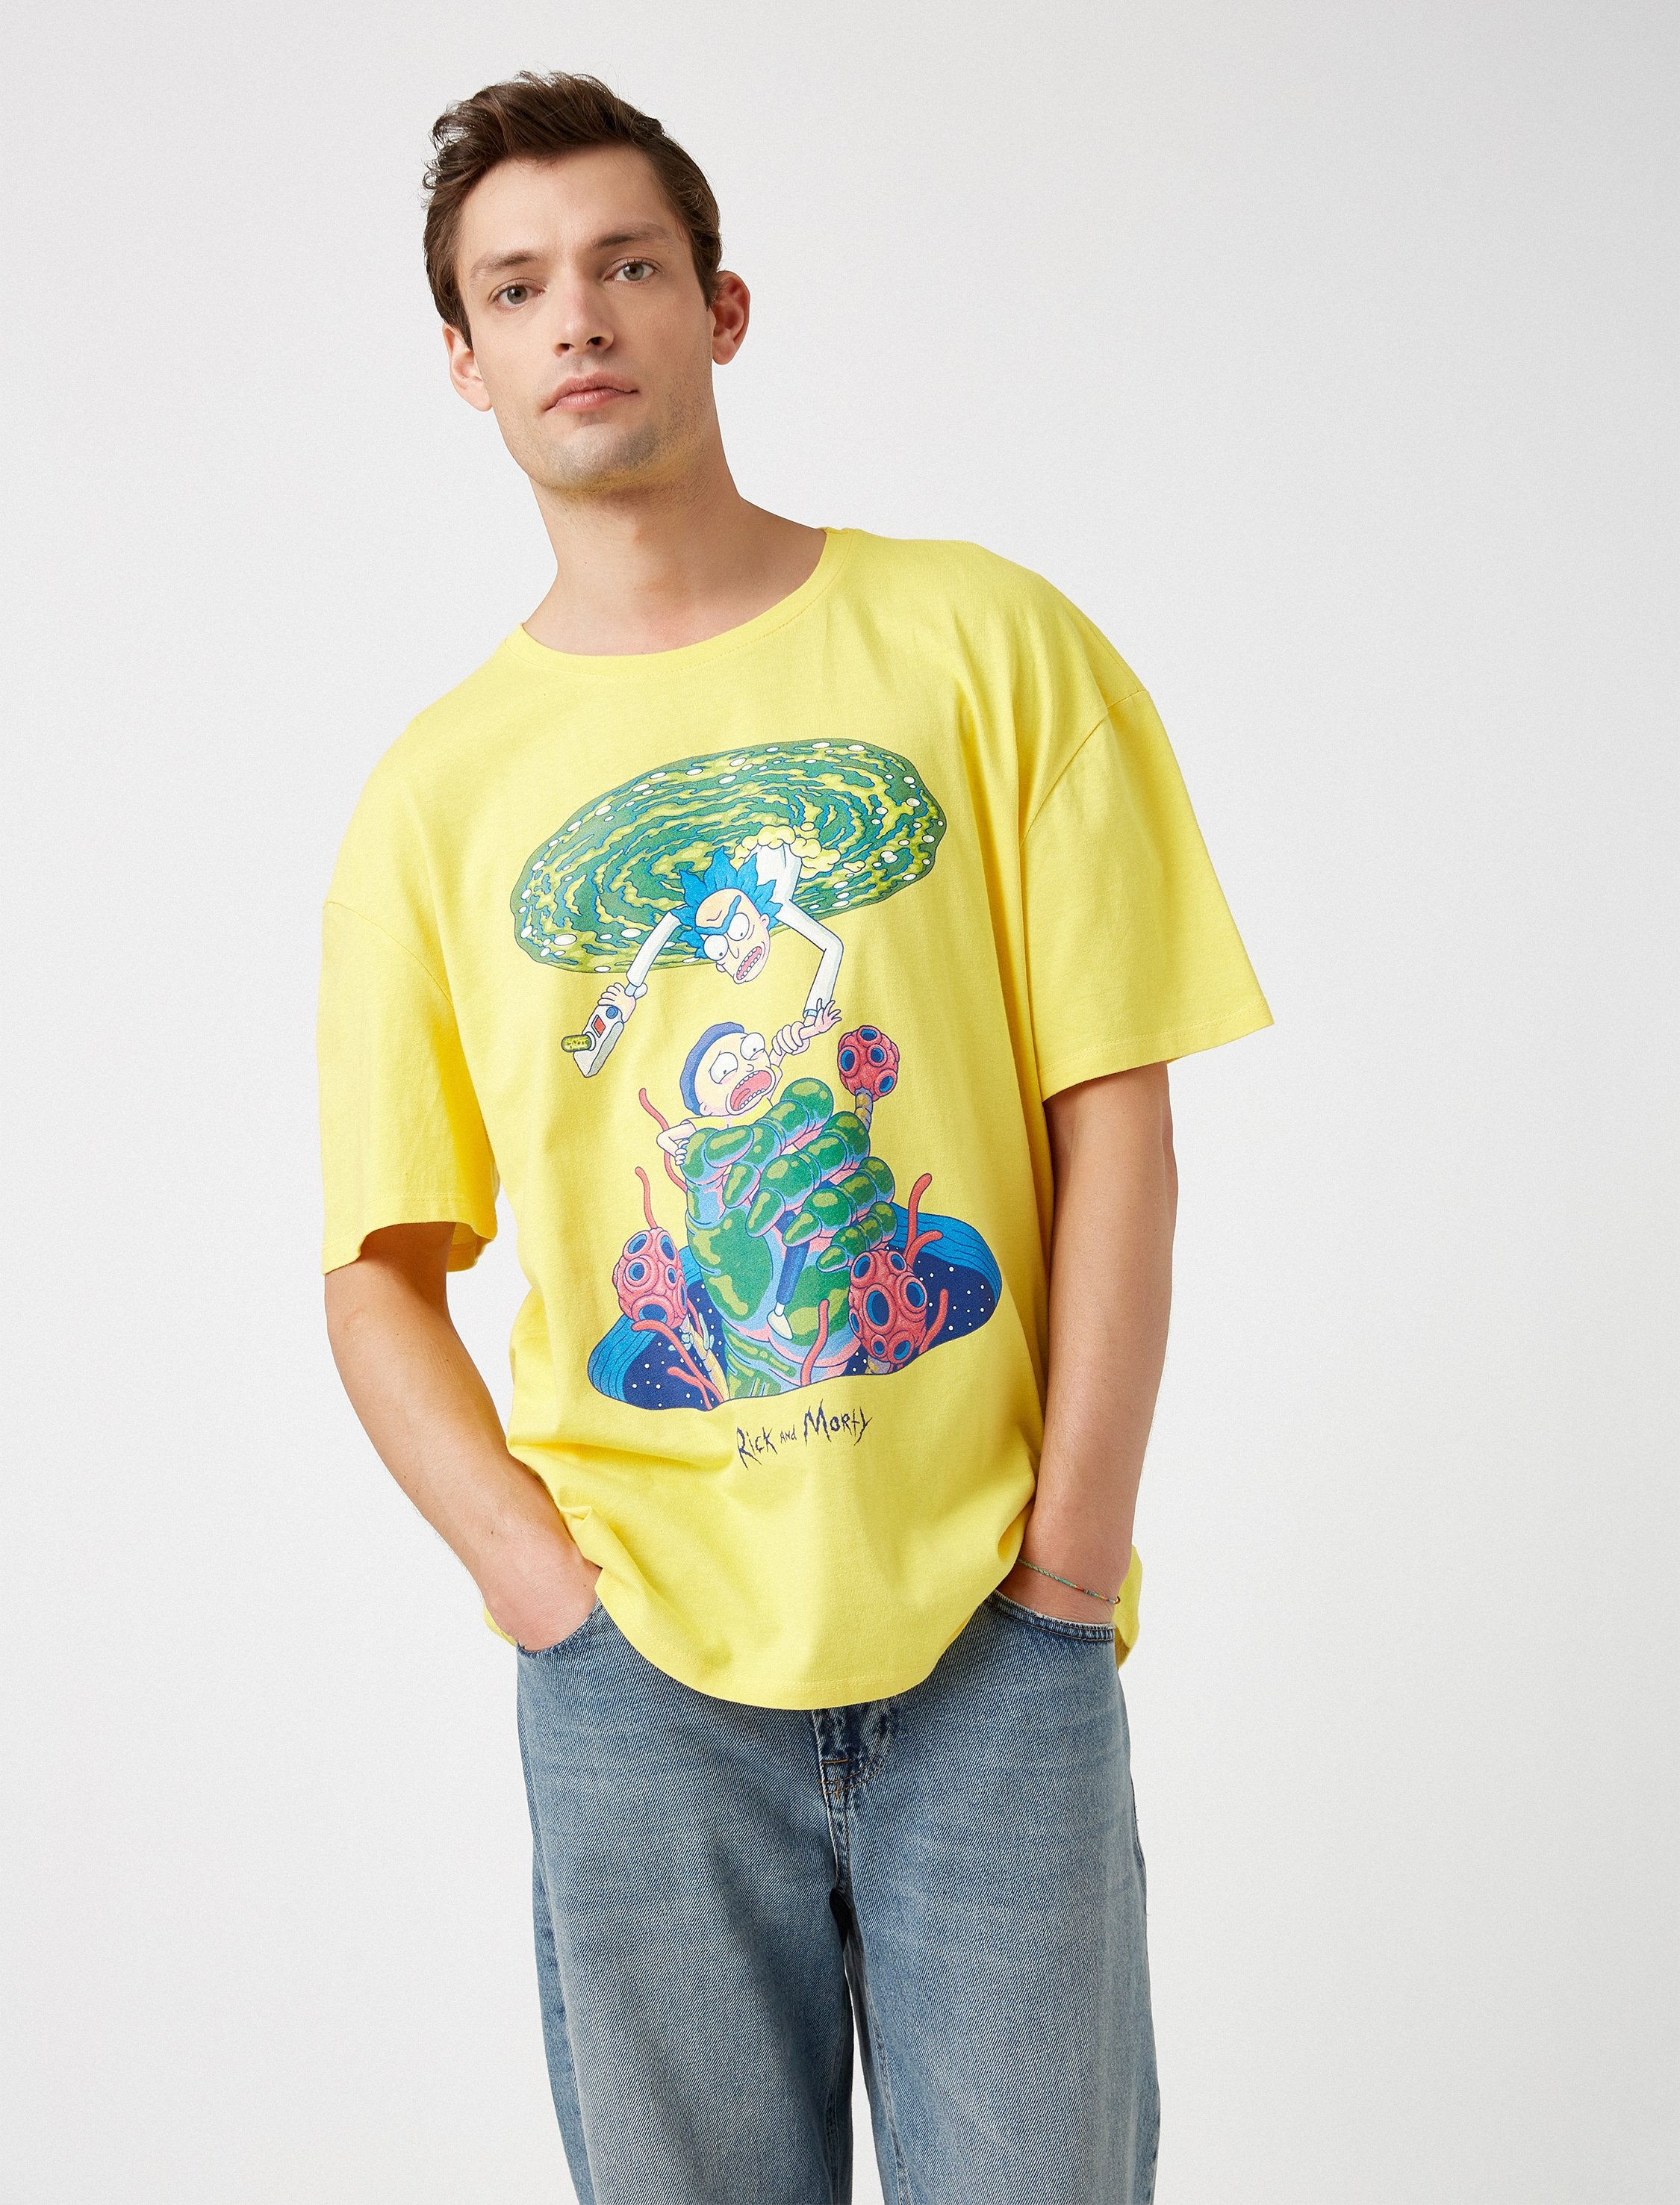 Rick and Morty Graphic Tshirt in Yellow